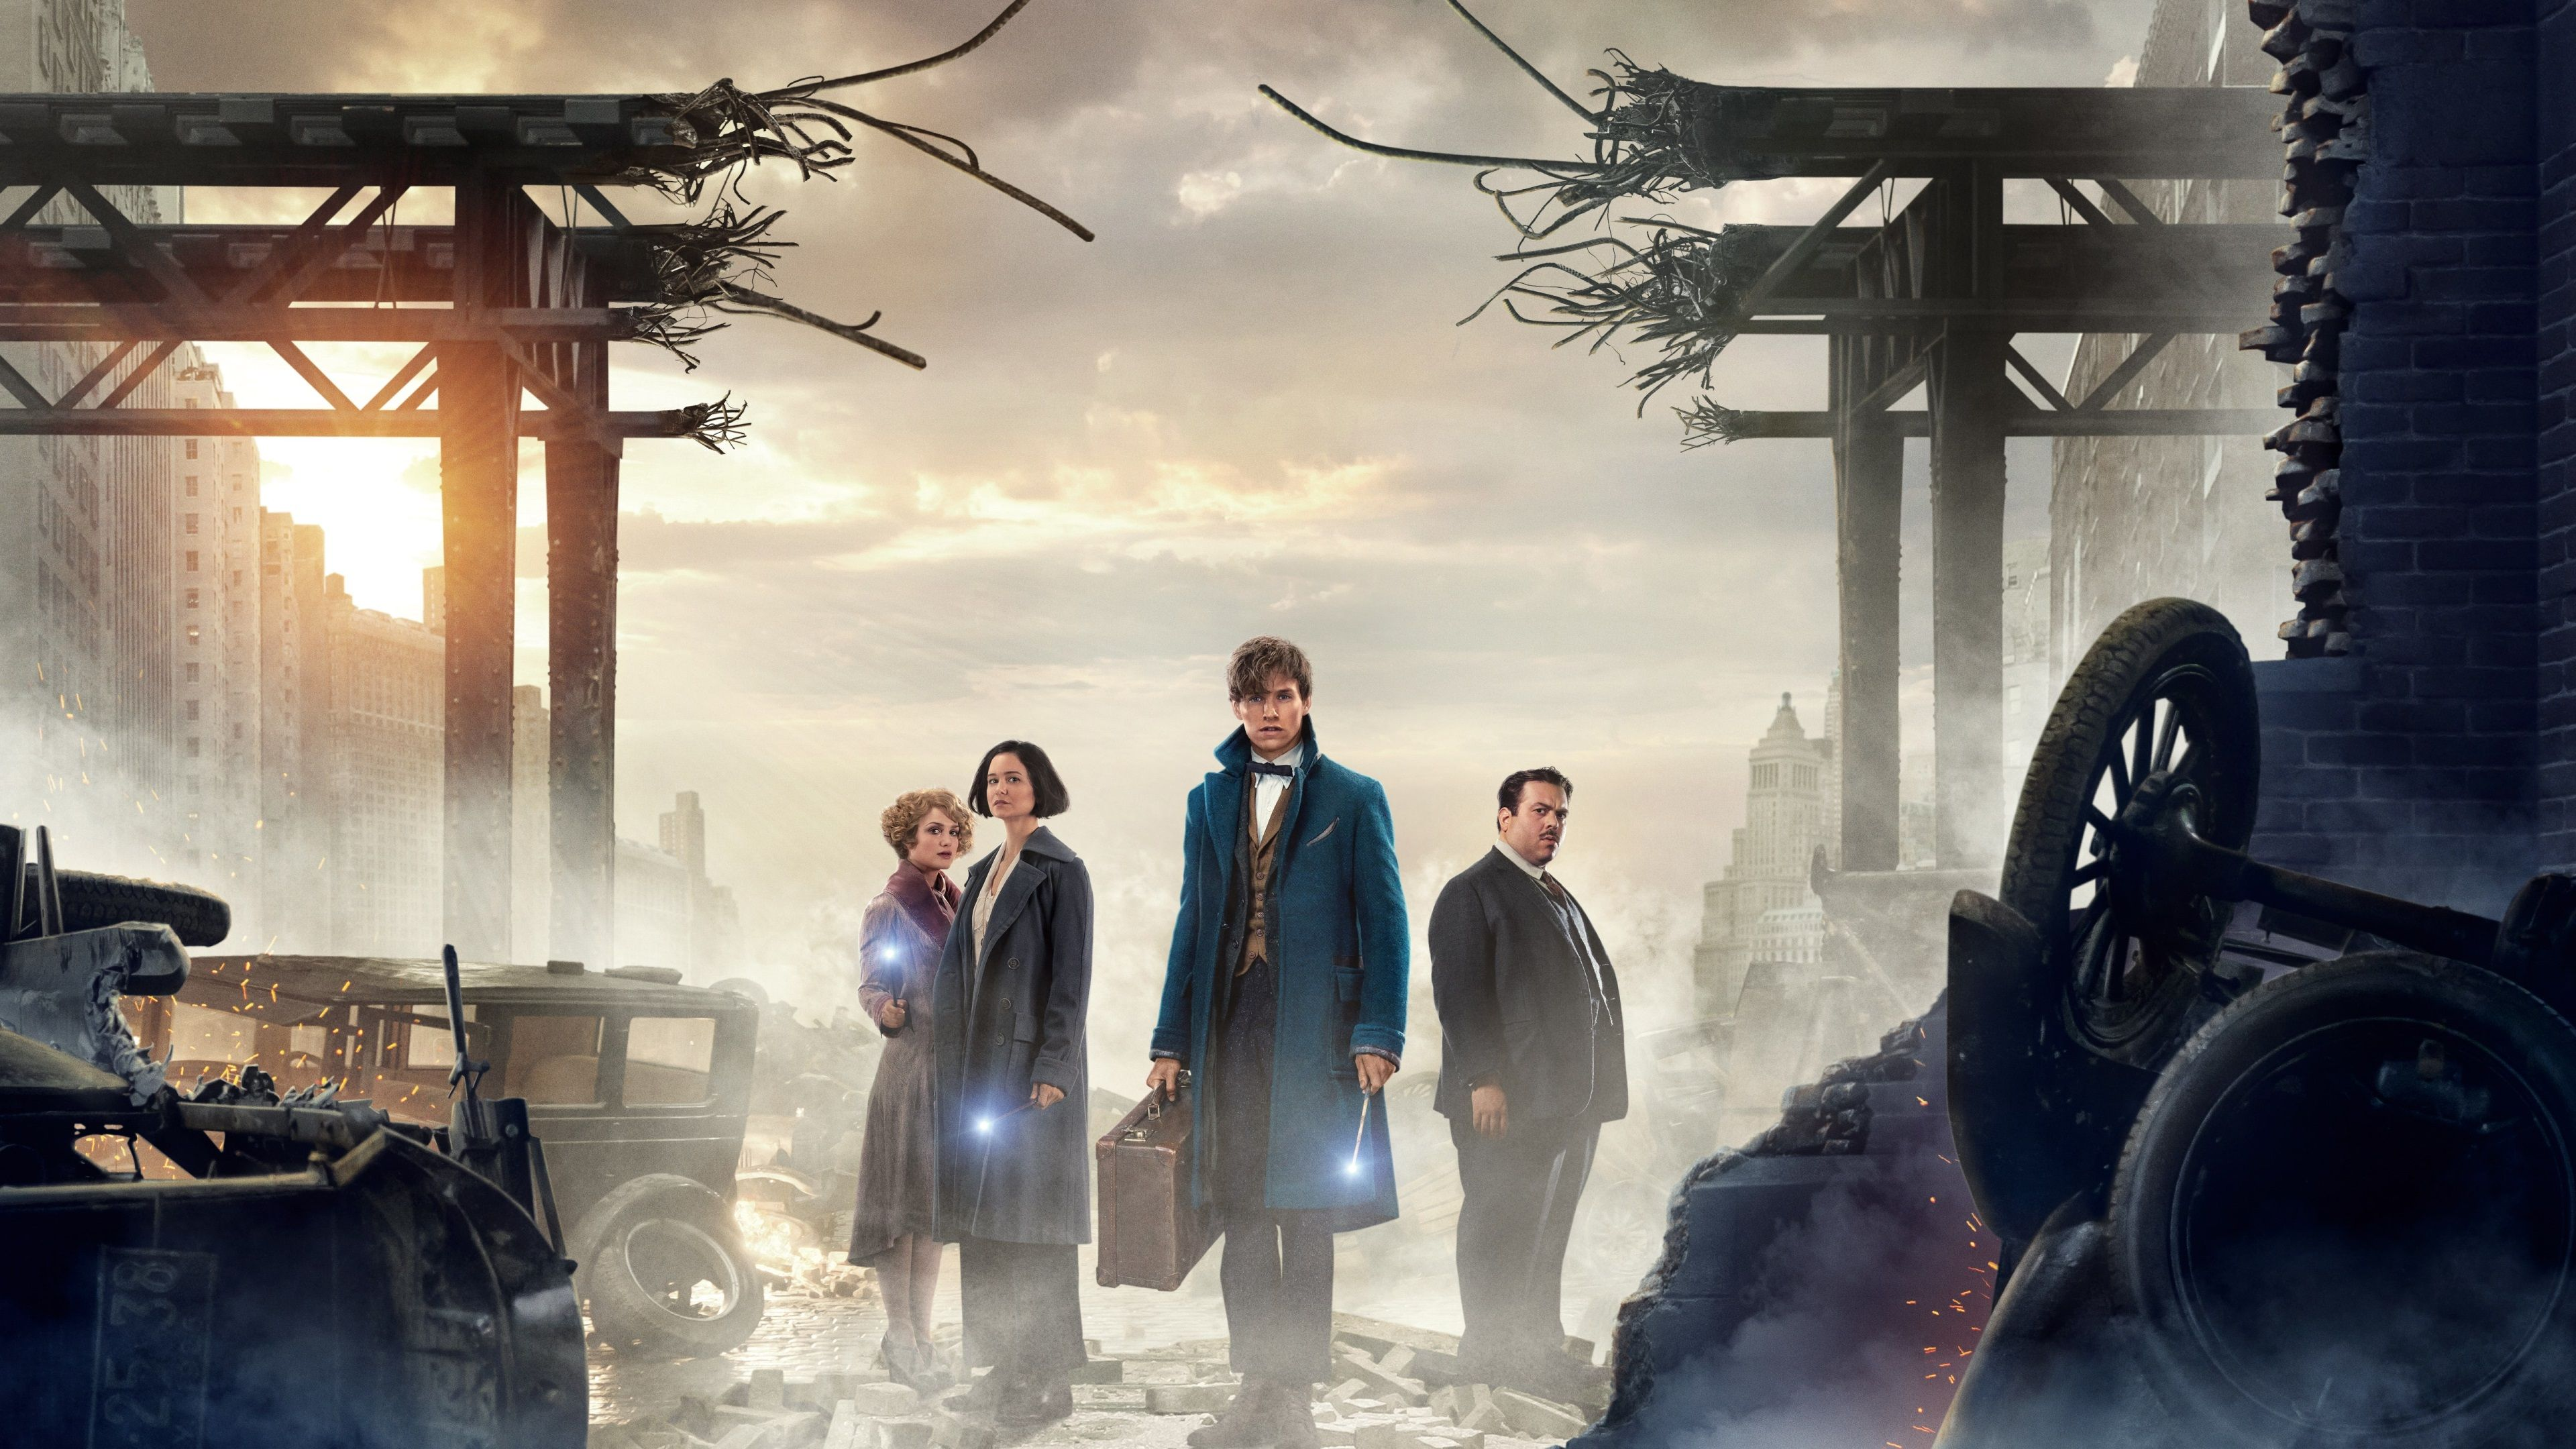 3840x2160 Fantastic Beasts And Where To Find Them 4k Wallpaper For